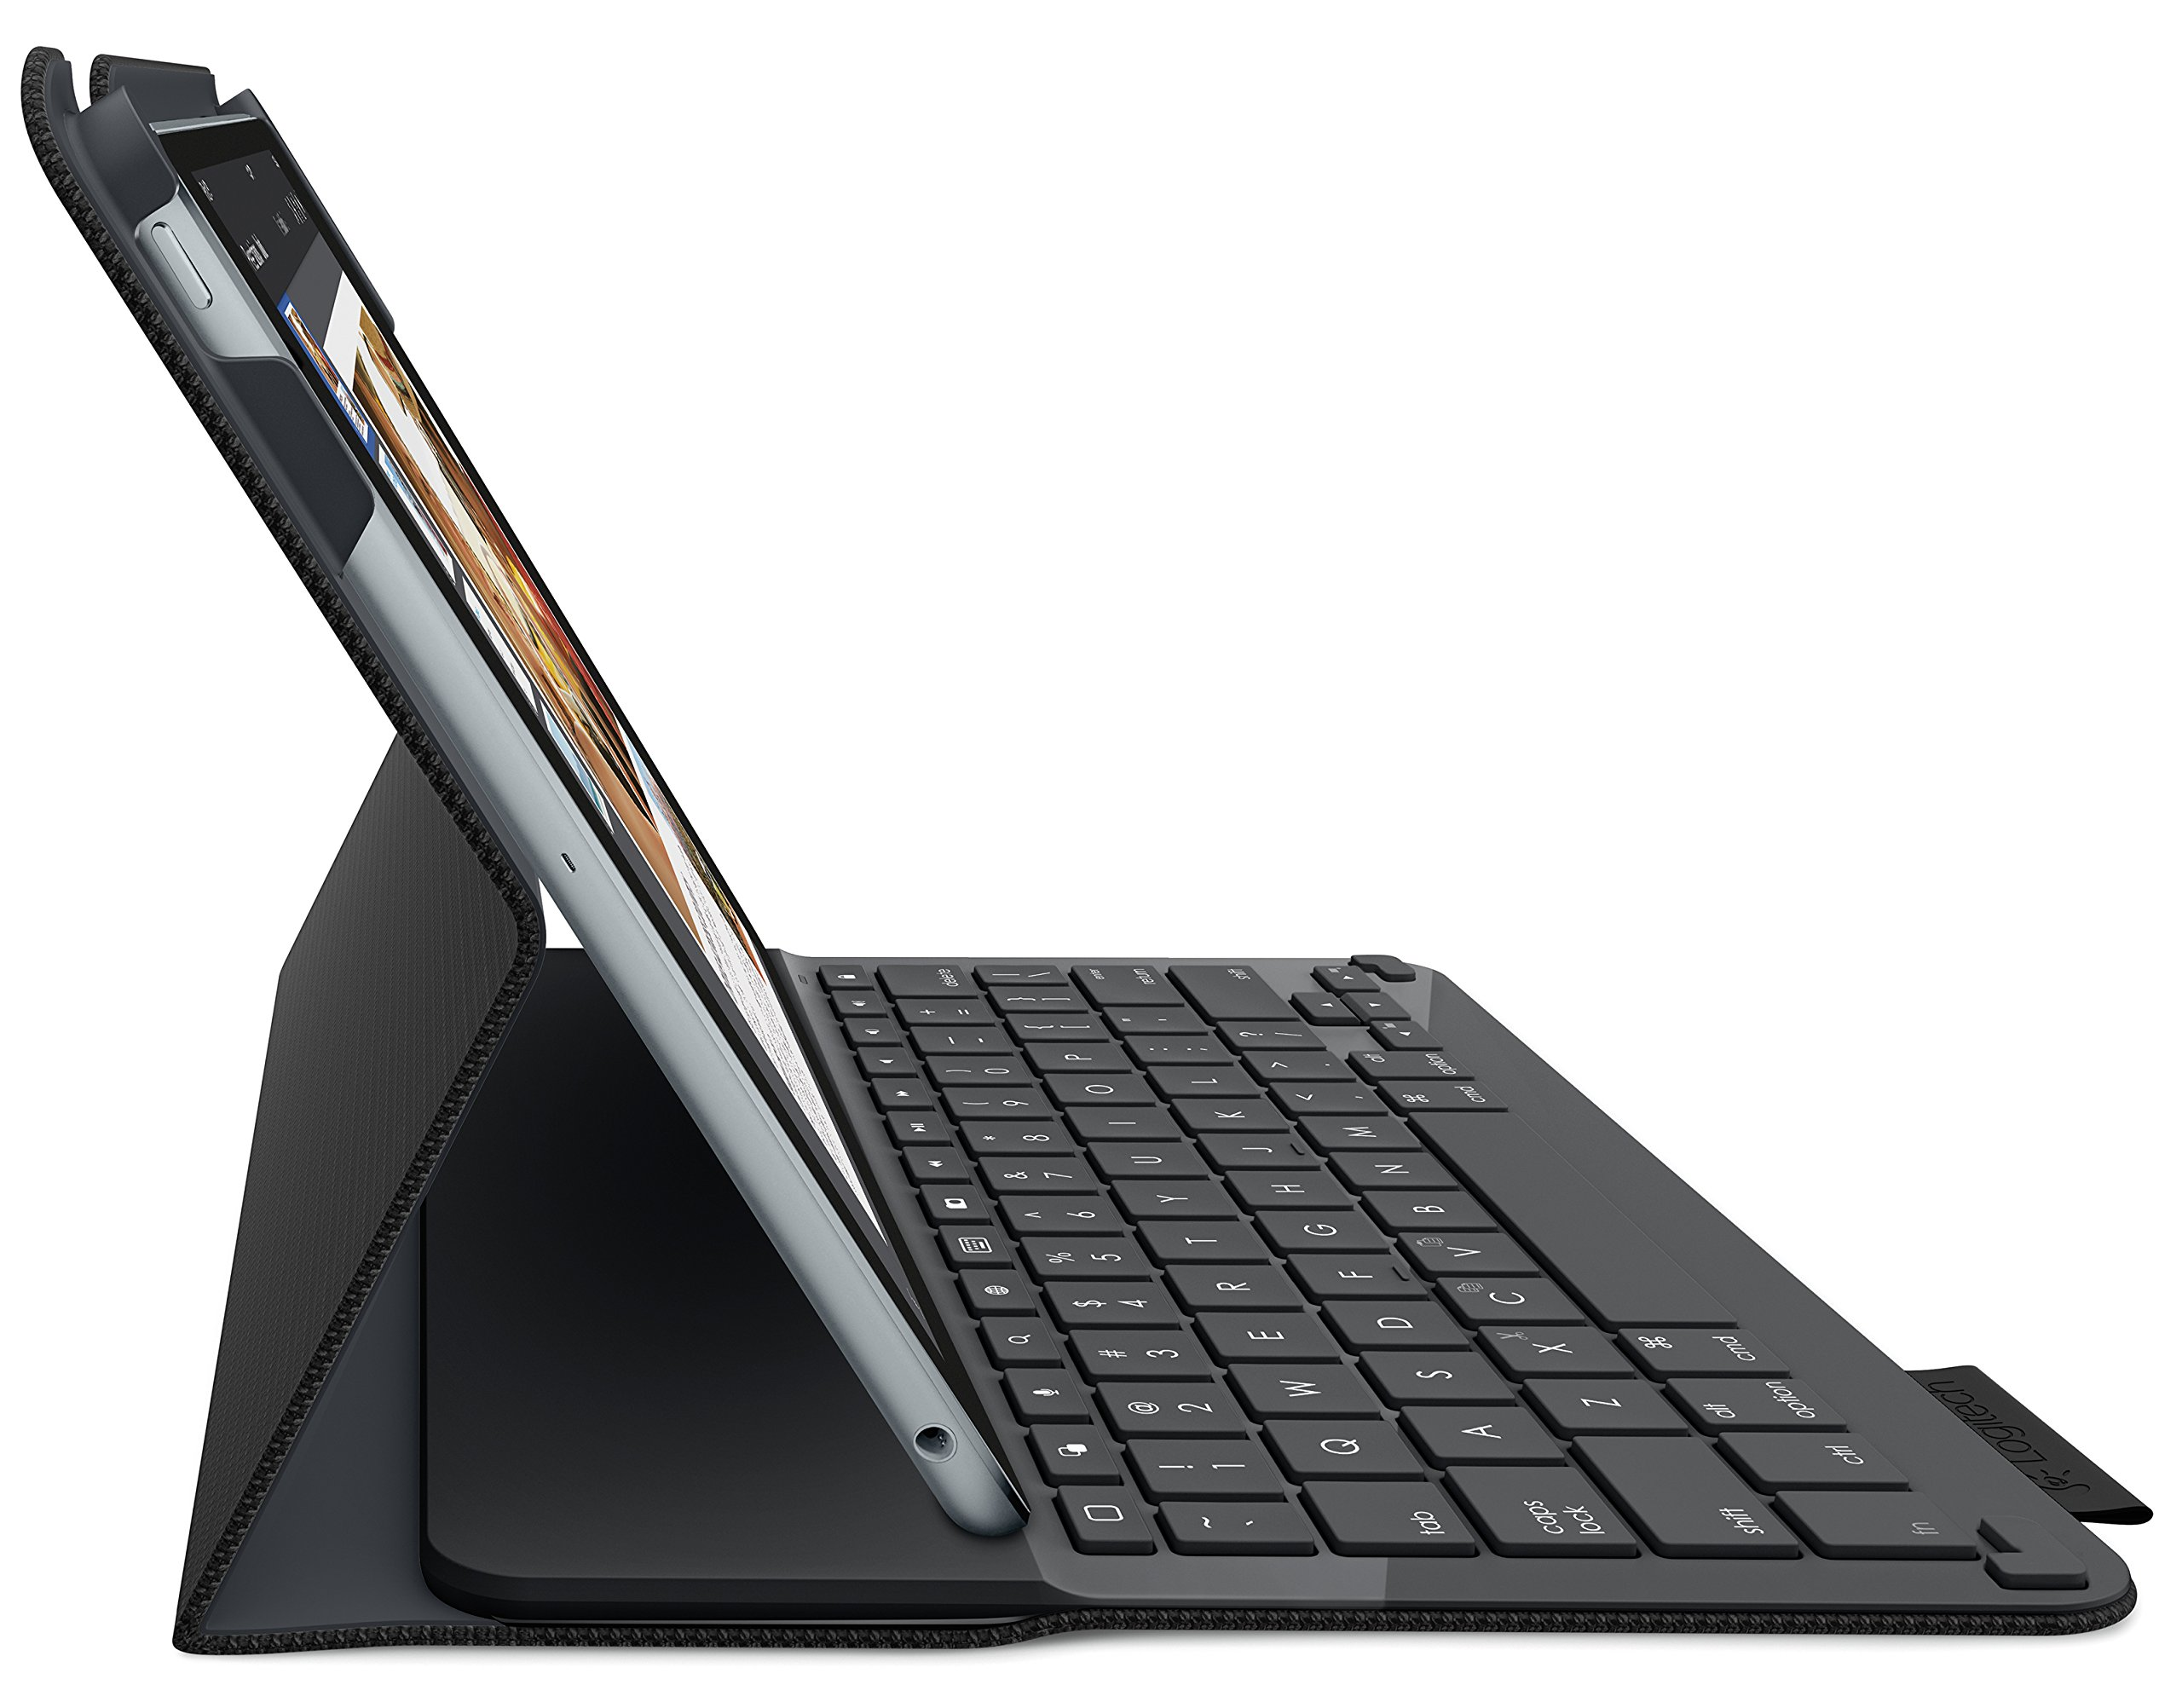 Logitech 920-006576 Protective Case with Integrated Keyboard for iPad Air 2 (Woven Black) by Logitech (Image #3)